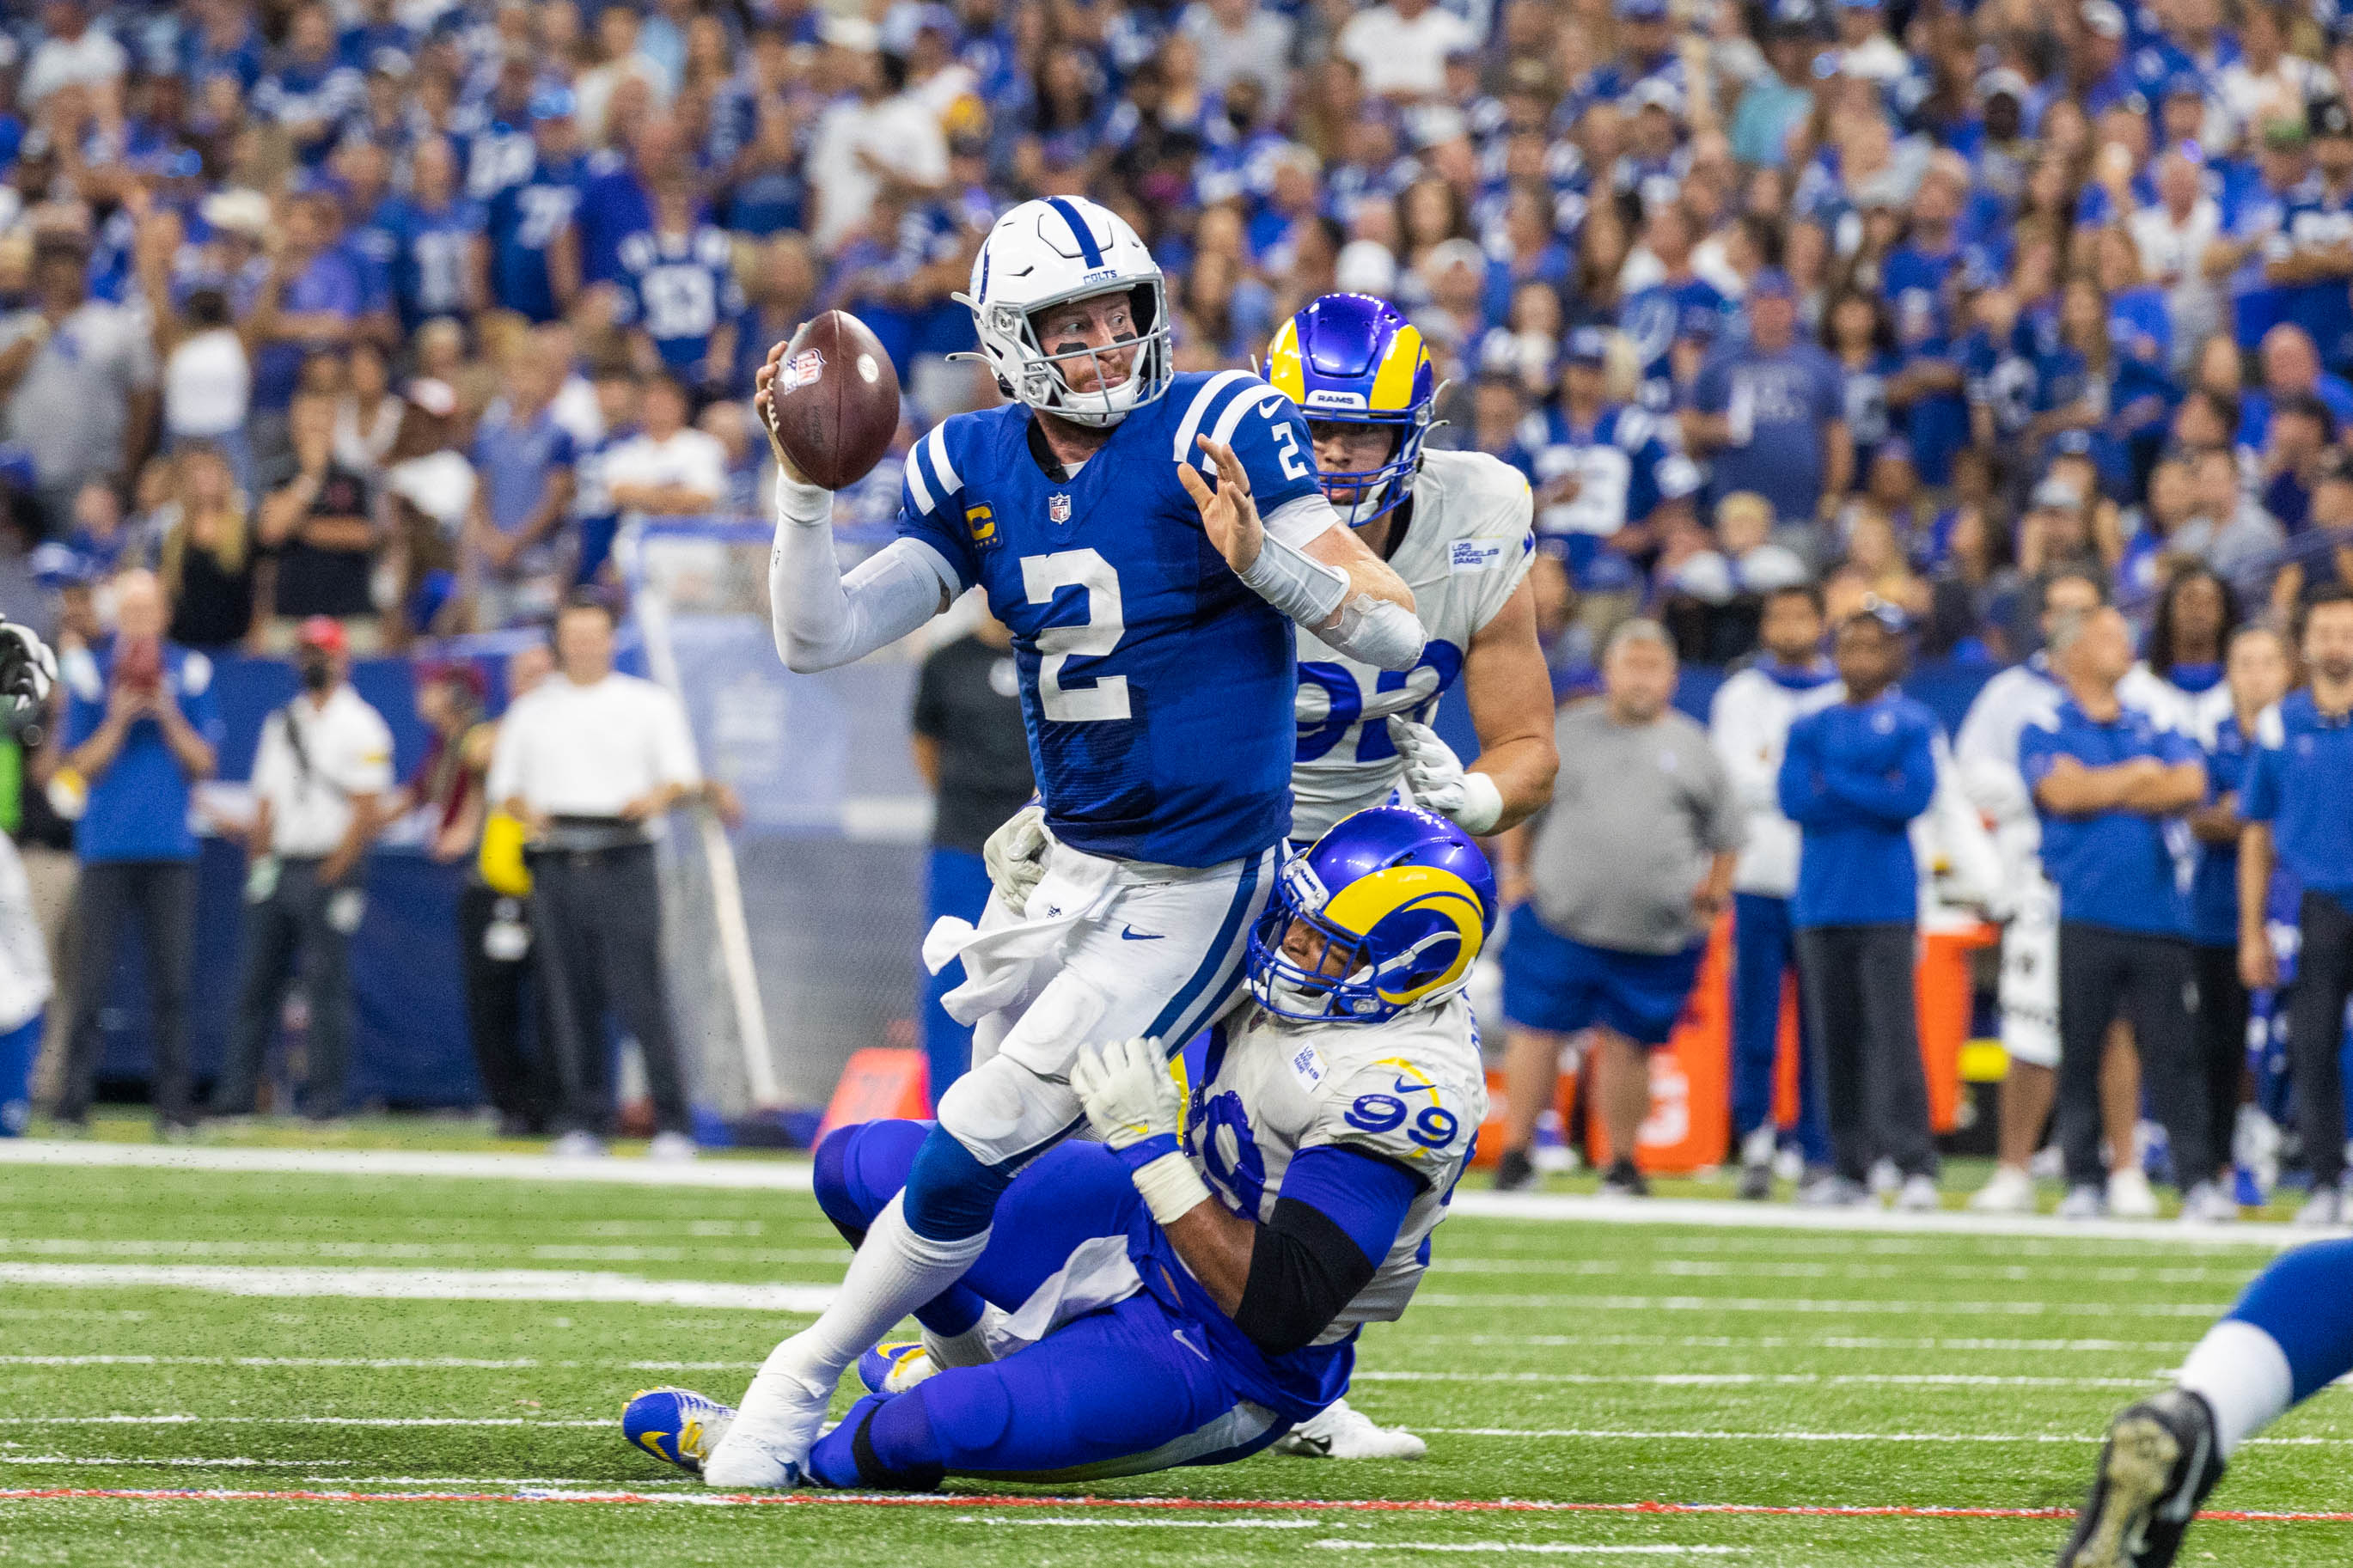 Indianapolis Colts quarterback Carson Wentz (2) passes the ball while Los Angeles Rams defensive end Aaron Donald (99) defends in the second half at Lucas Oil Stadium.